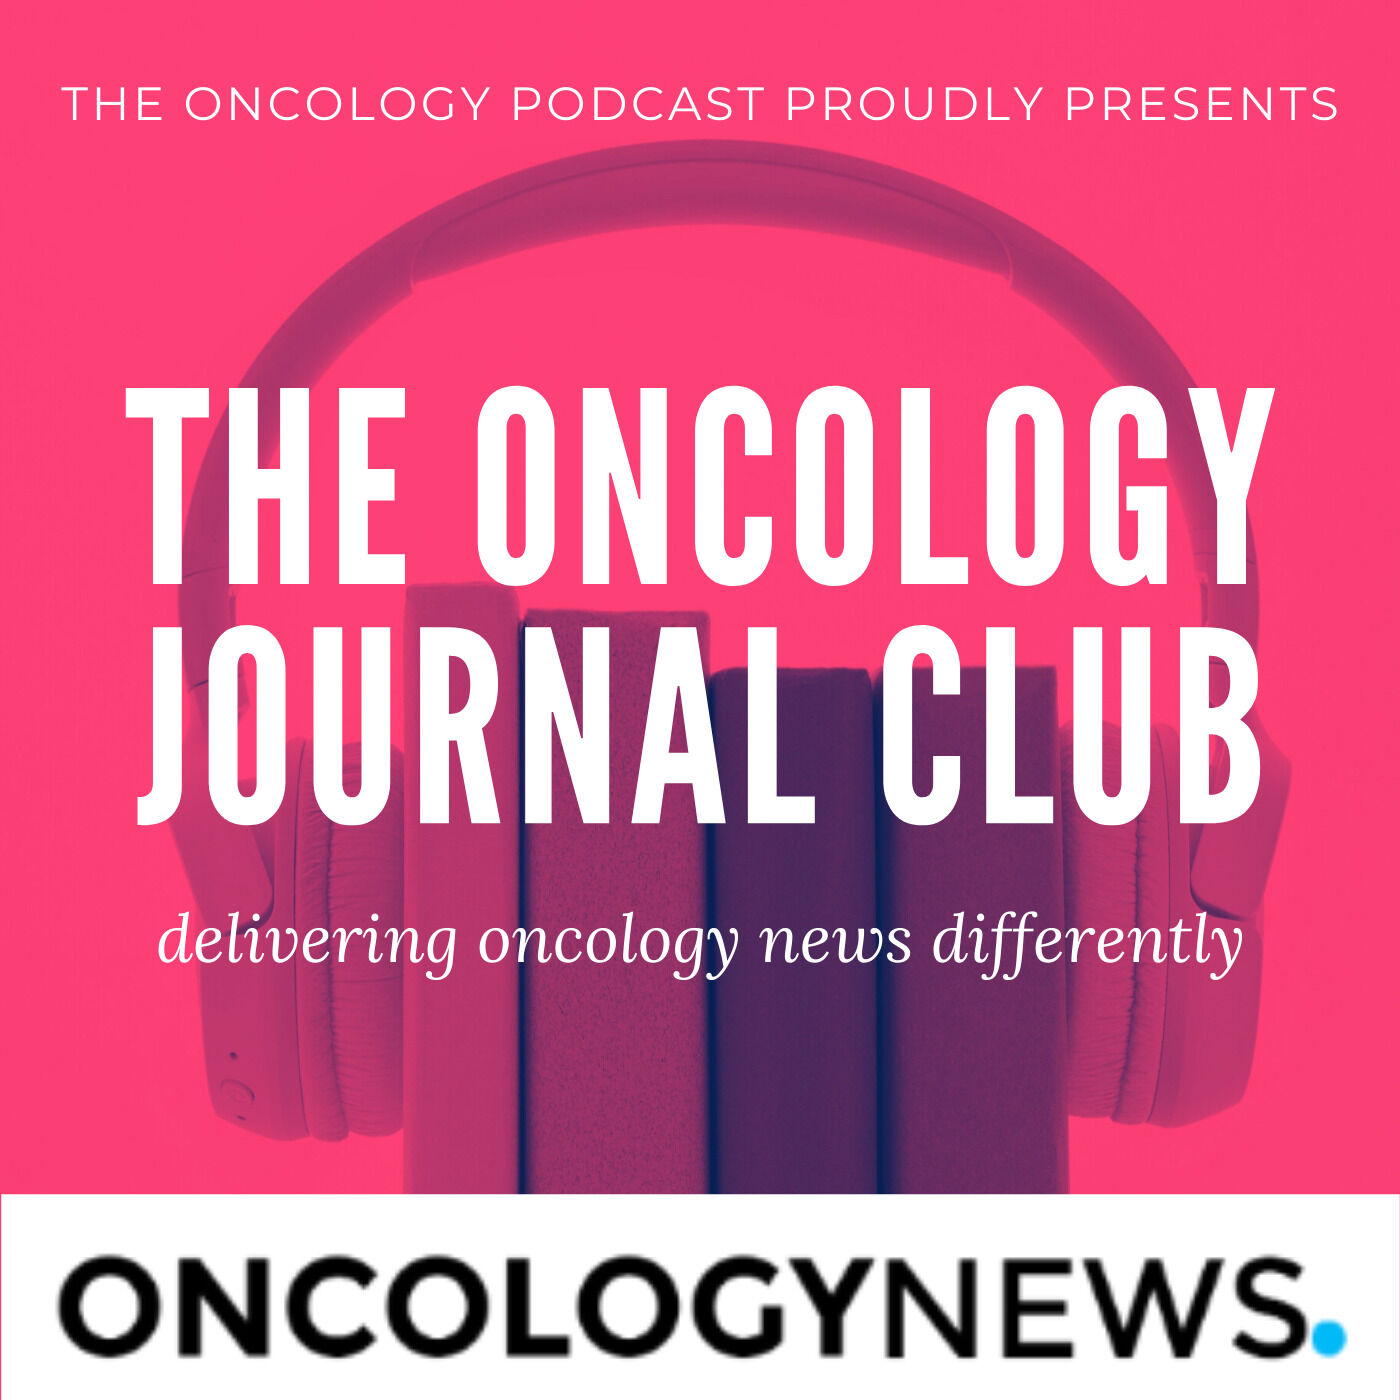 The Oncology Journal Club: AACR, Neoadjuvant Immunotherapy for Colon Cancer, HRT and much more